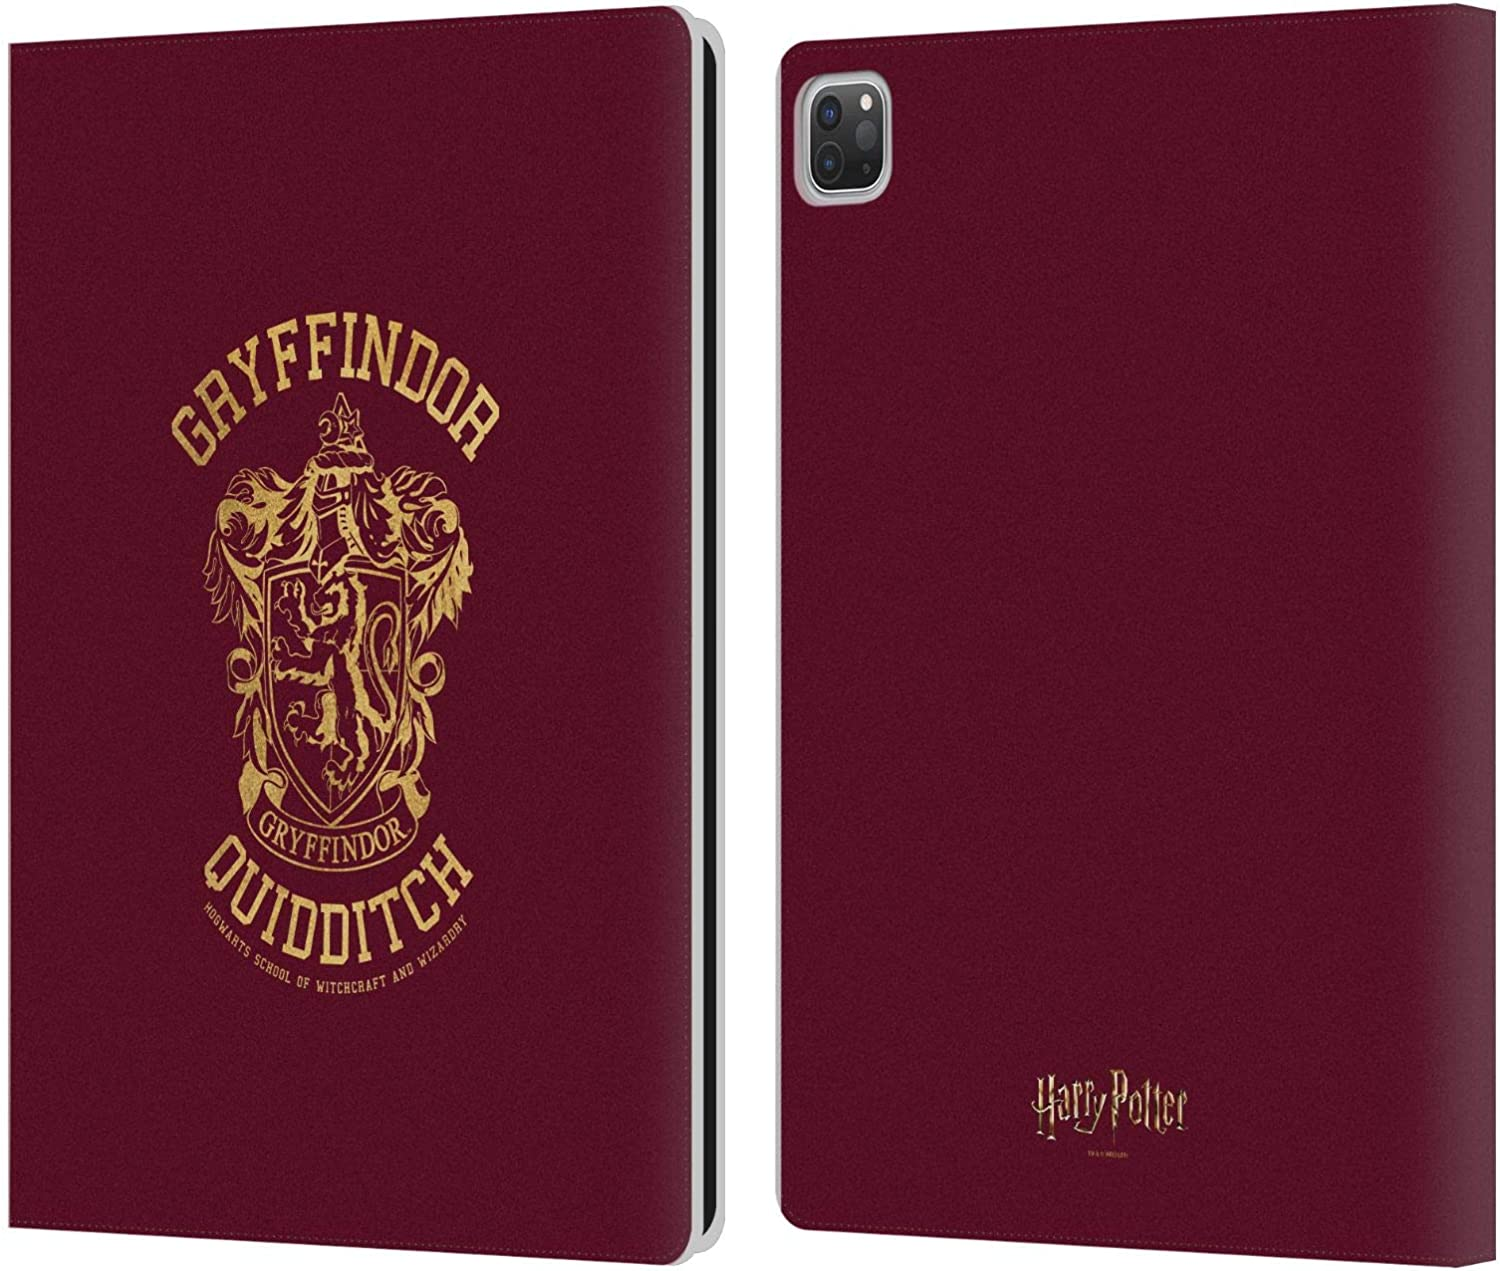 Head Case Designs Officially Licensed Harry Potter Gryffindor Quidditch Deathly Hallows X Leather Book Wallet Case Cover Compatible with Apple iPad Pro 12.9 (2020/2021)